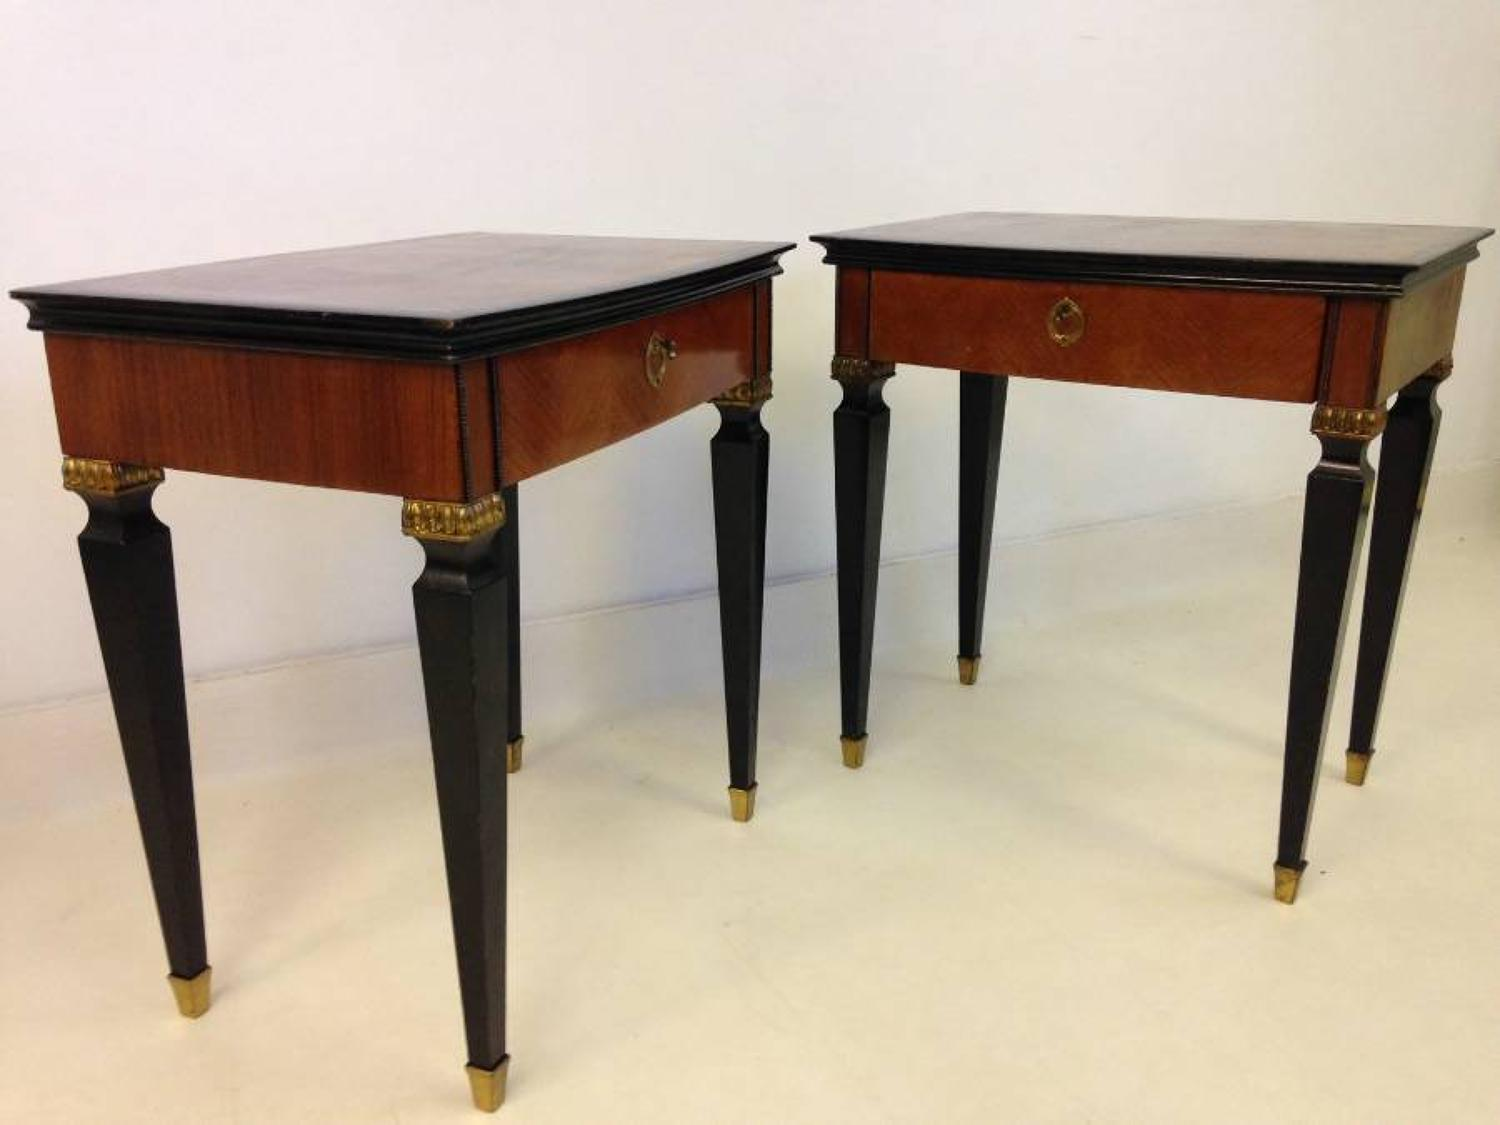 A pair of Italian bedside tables